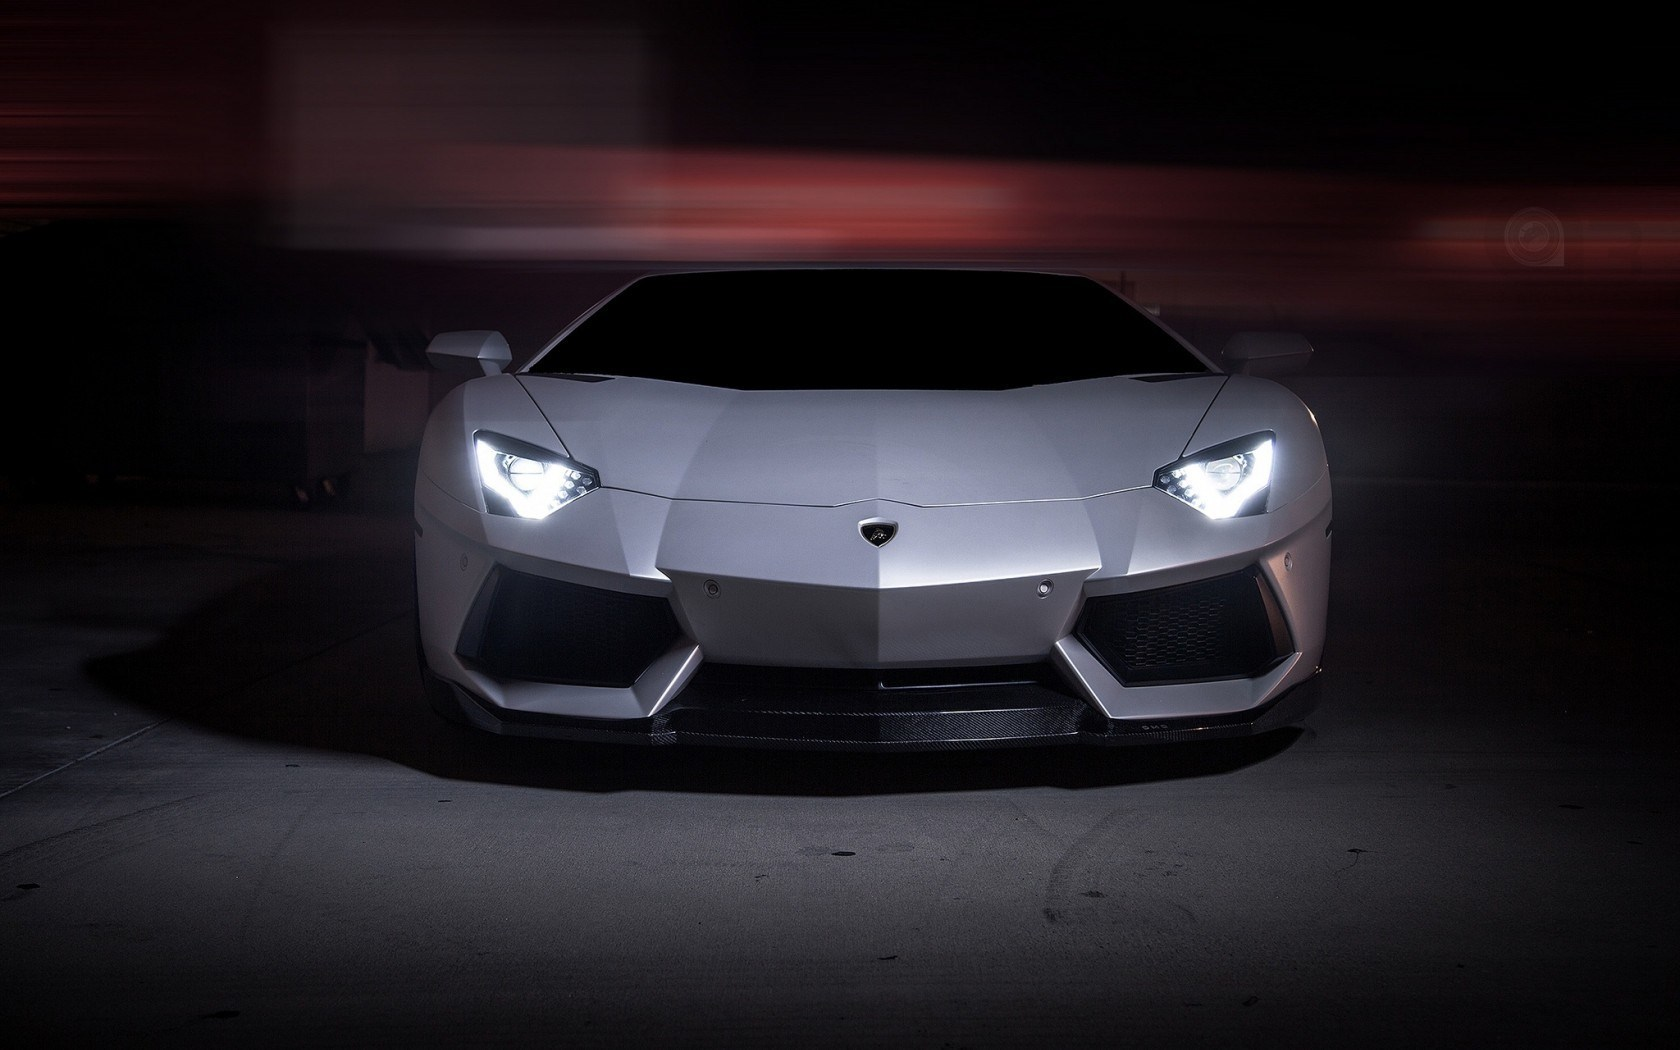 Front Lamborghini Aventador Lp700 4 Lights Wallpaper 1680x1050